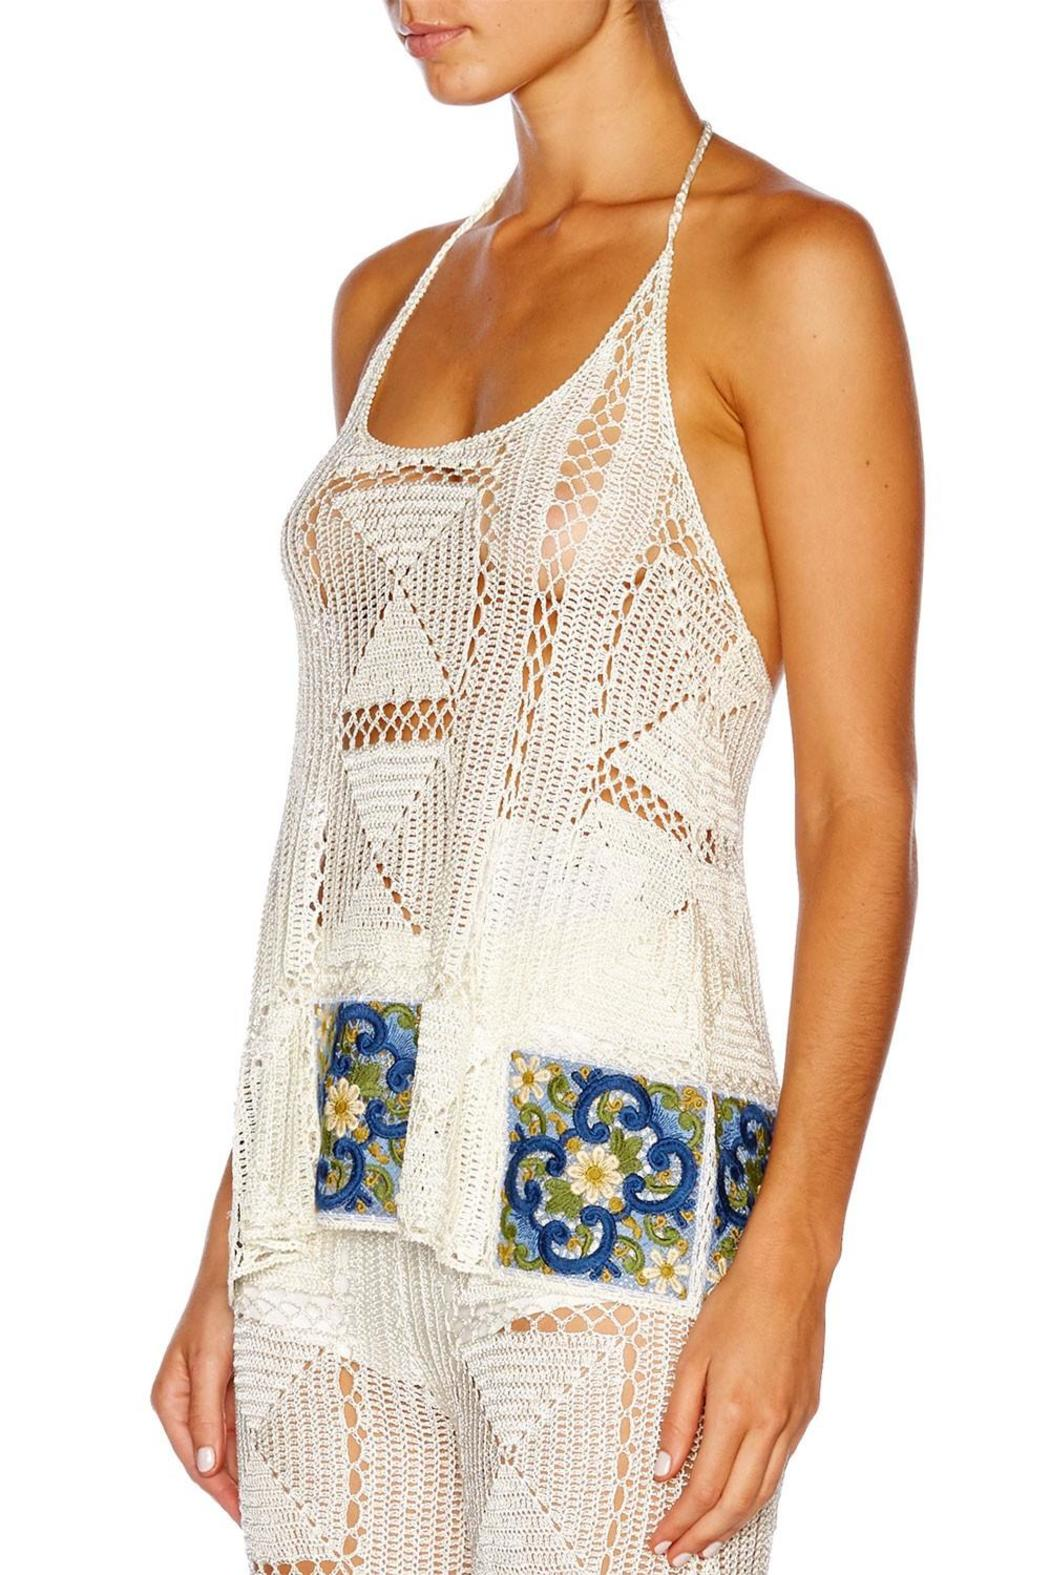 Camilla Shoestring Halter Top From South Australia By